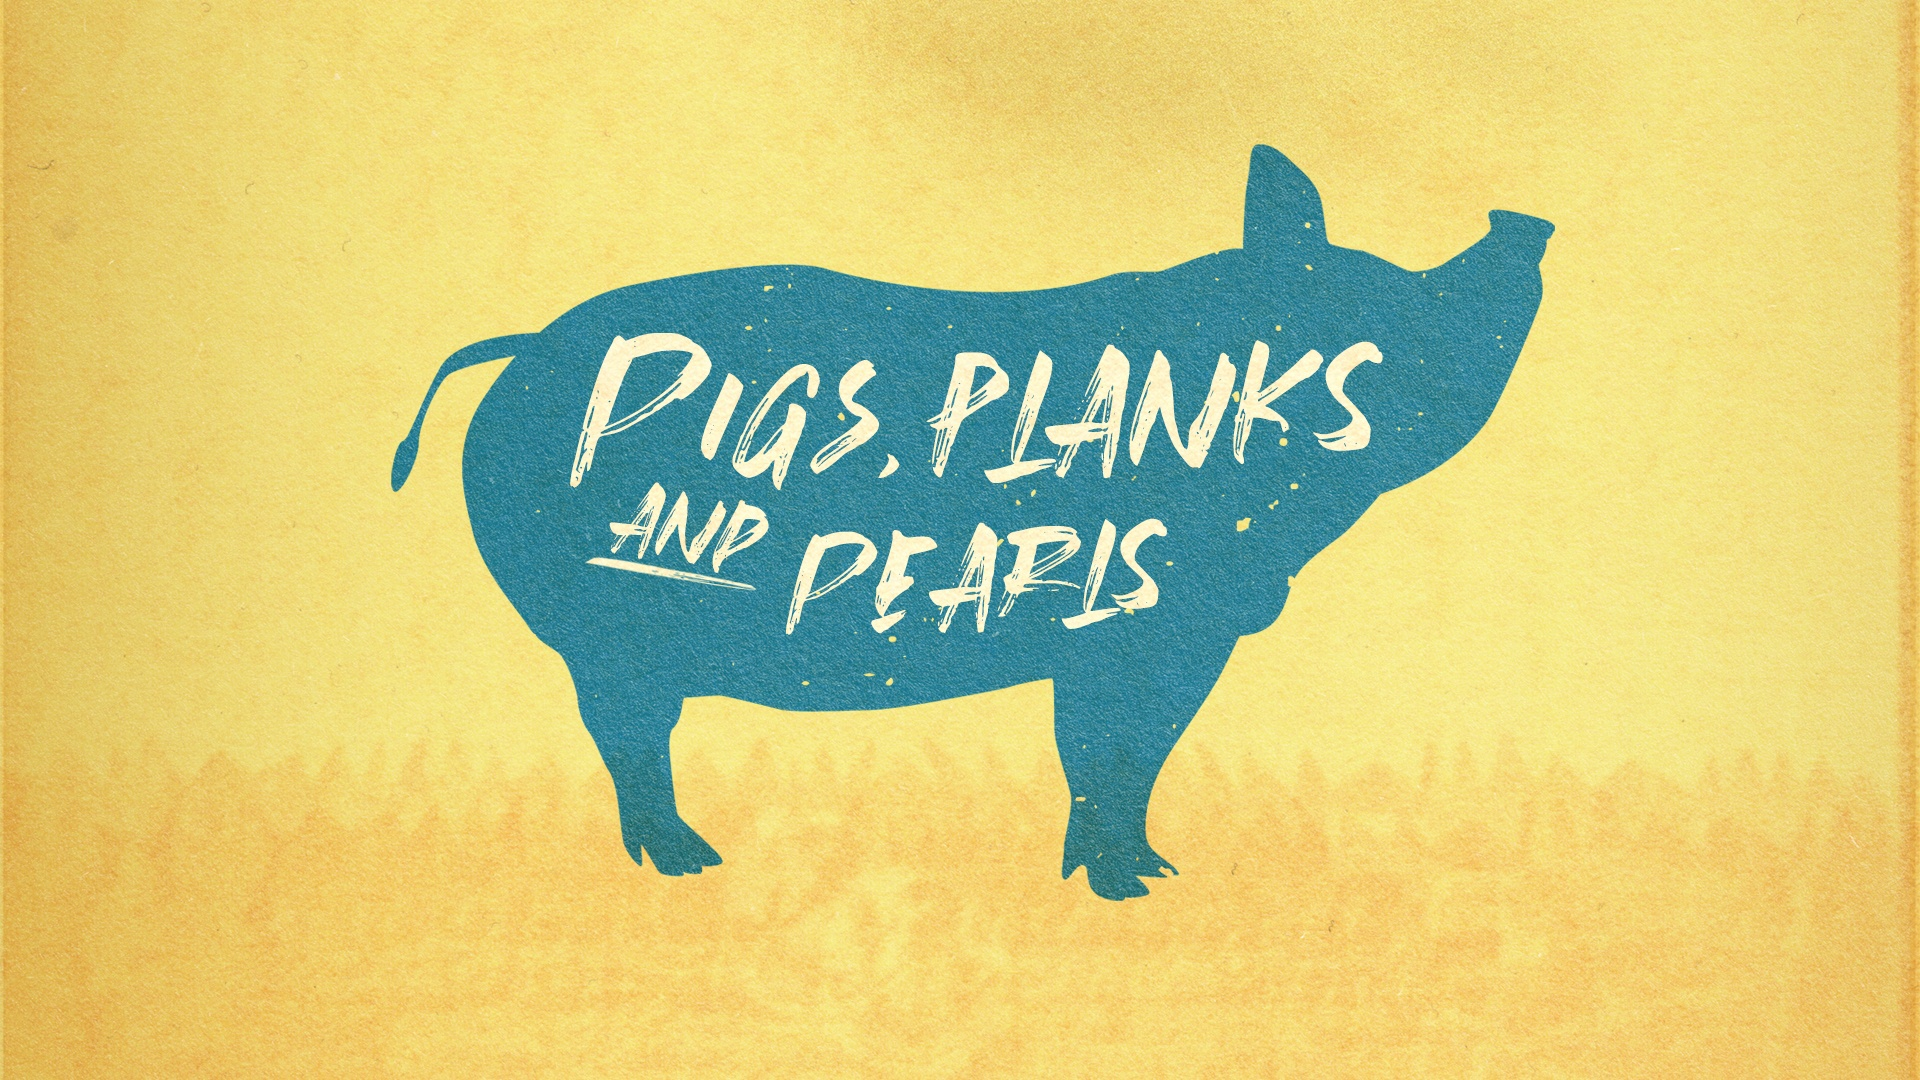 Pigs, Planks and Pearls